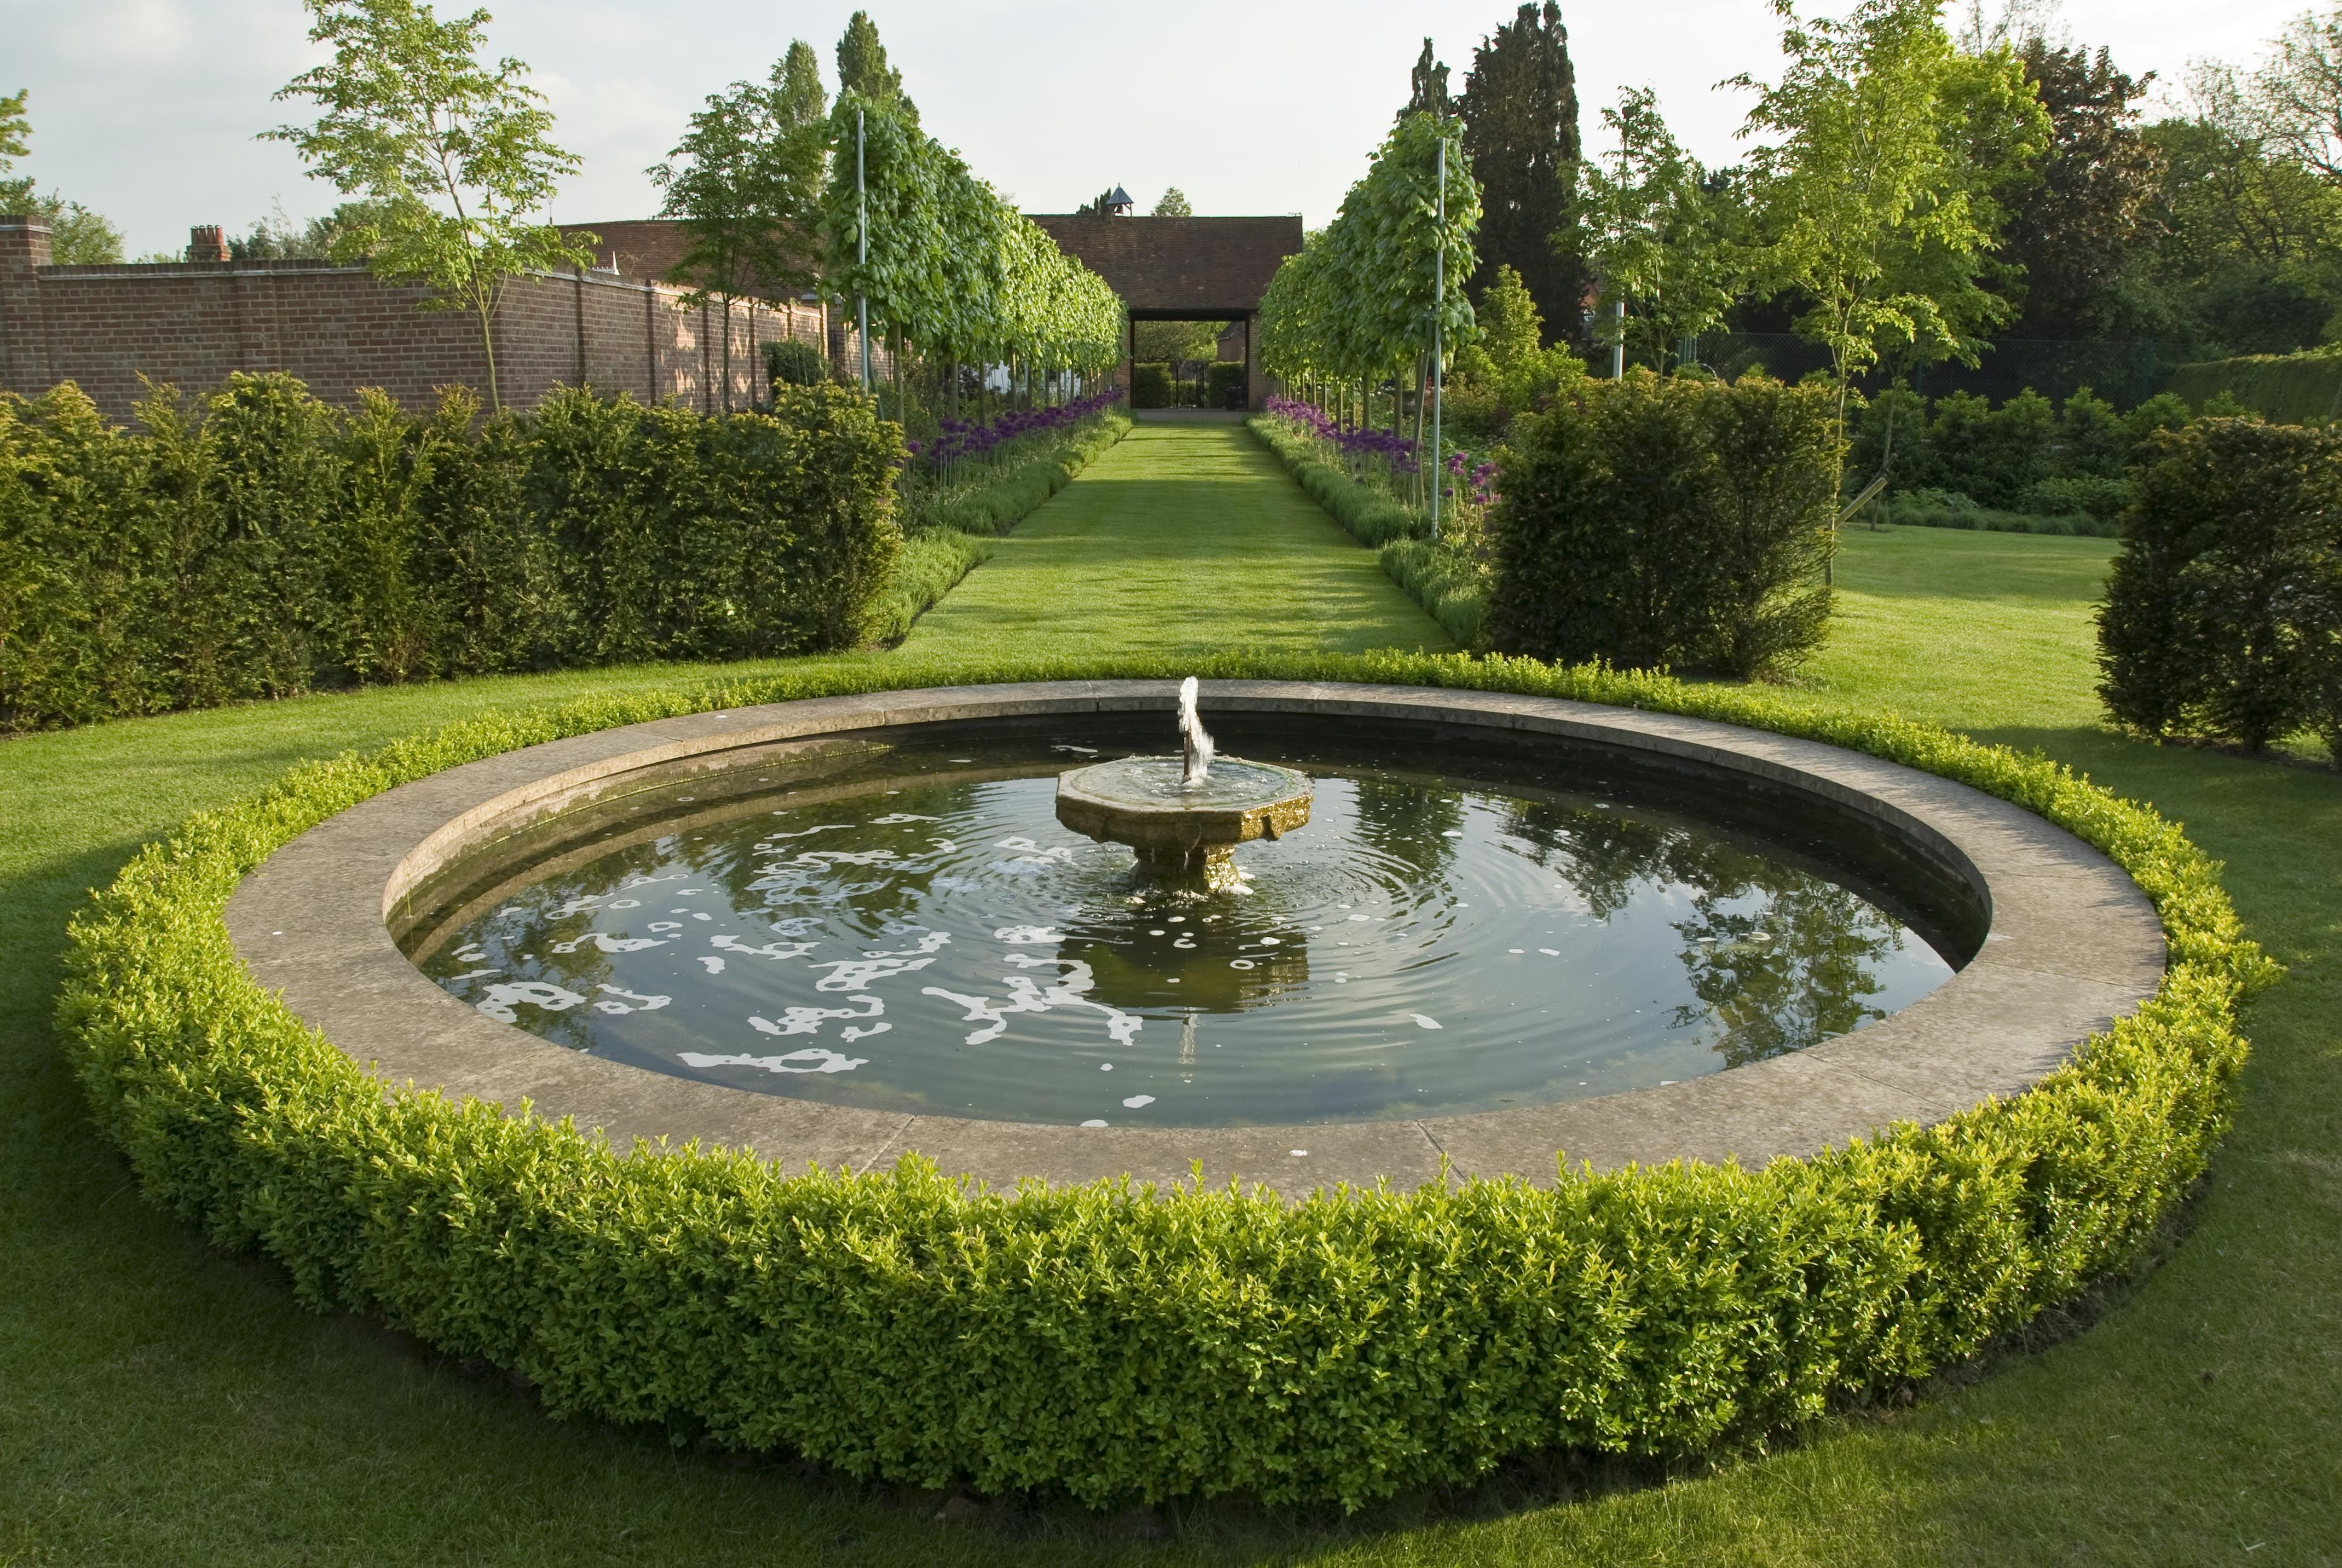 Acres Wild Landscape And Garden Design / Millwater Hampshire Garden, Surrey